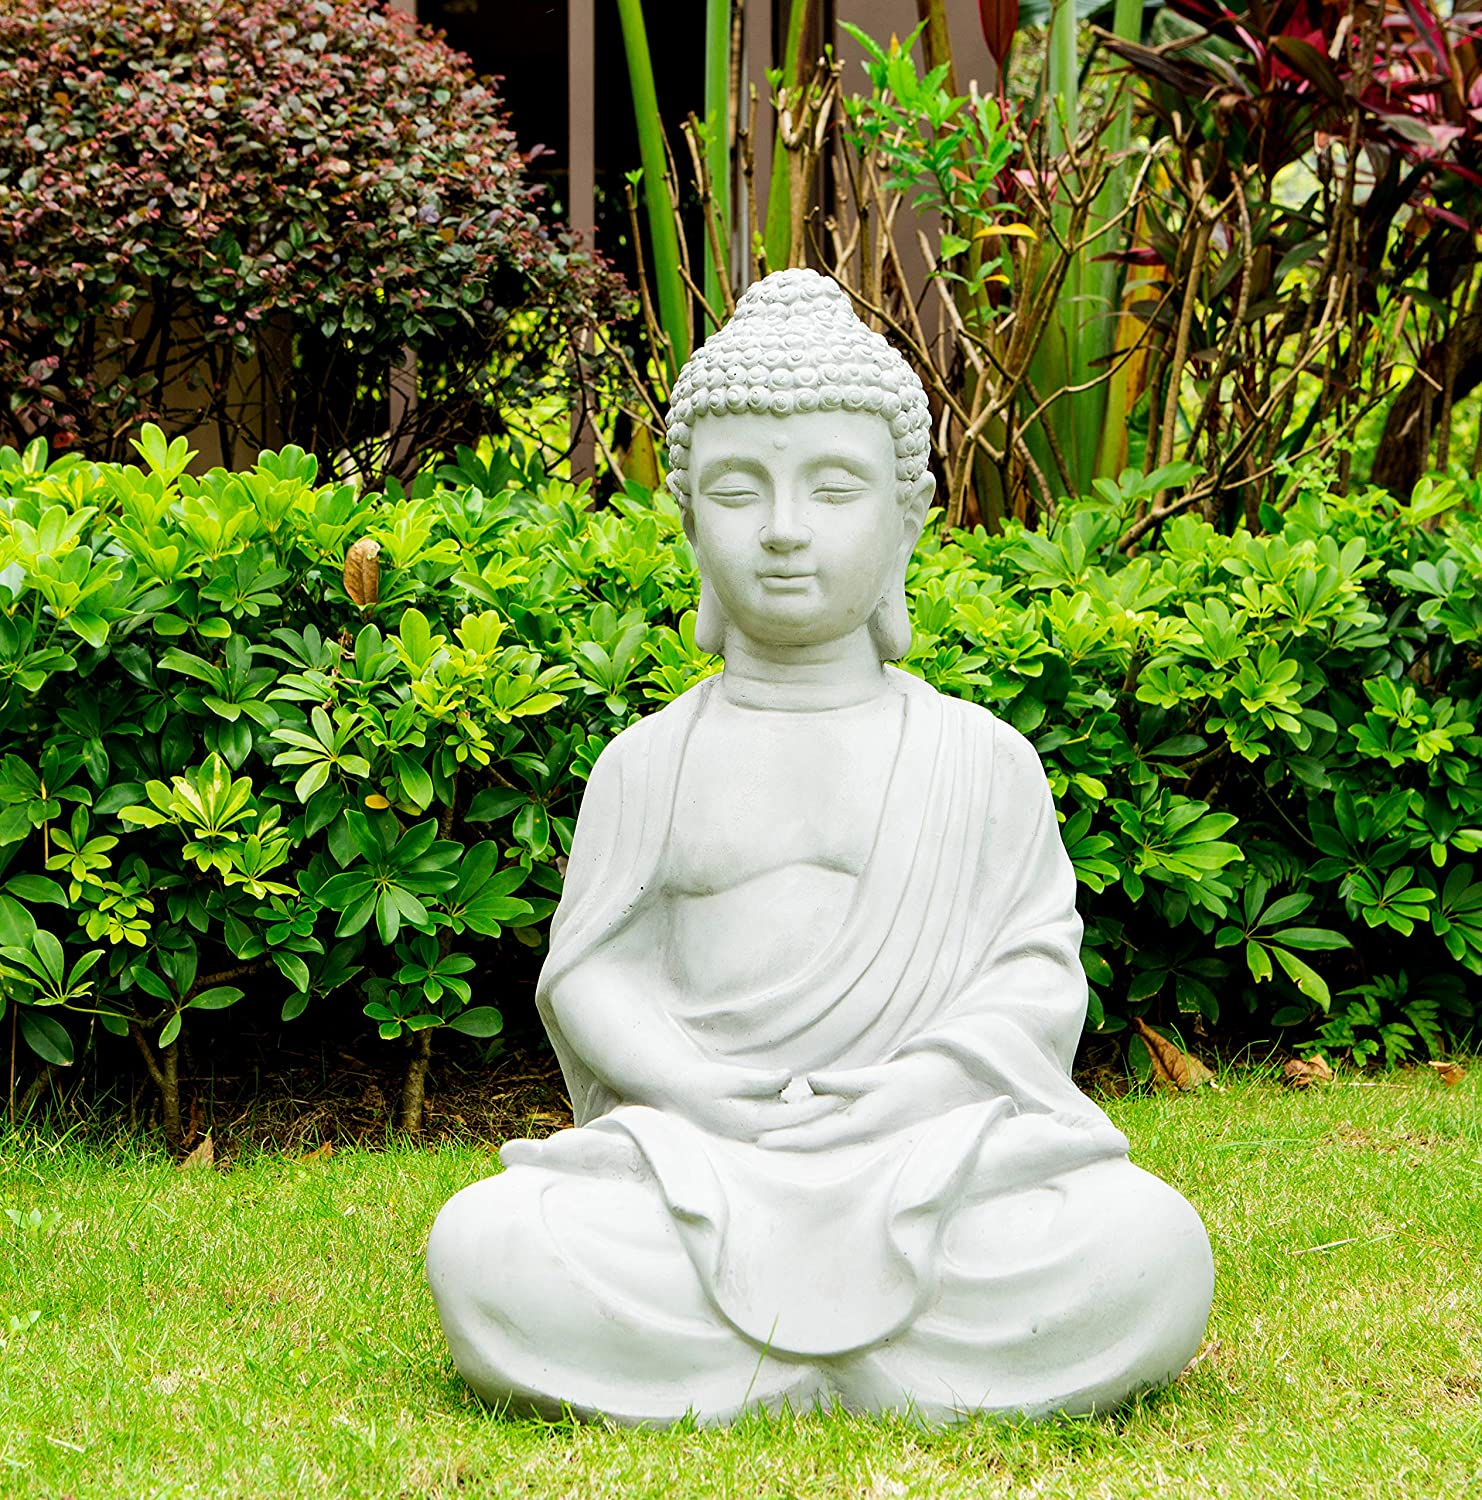 white-outdoor-buddha-statue-25-inch-tall-concrete-and-fiberglass-weather-resistant-meditating-decor-housewarming-gift-idea